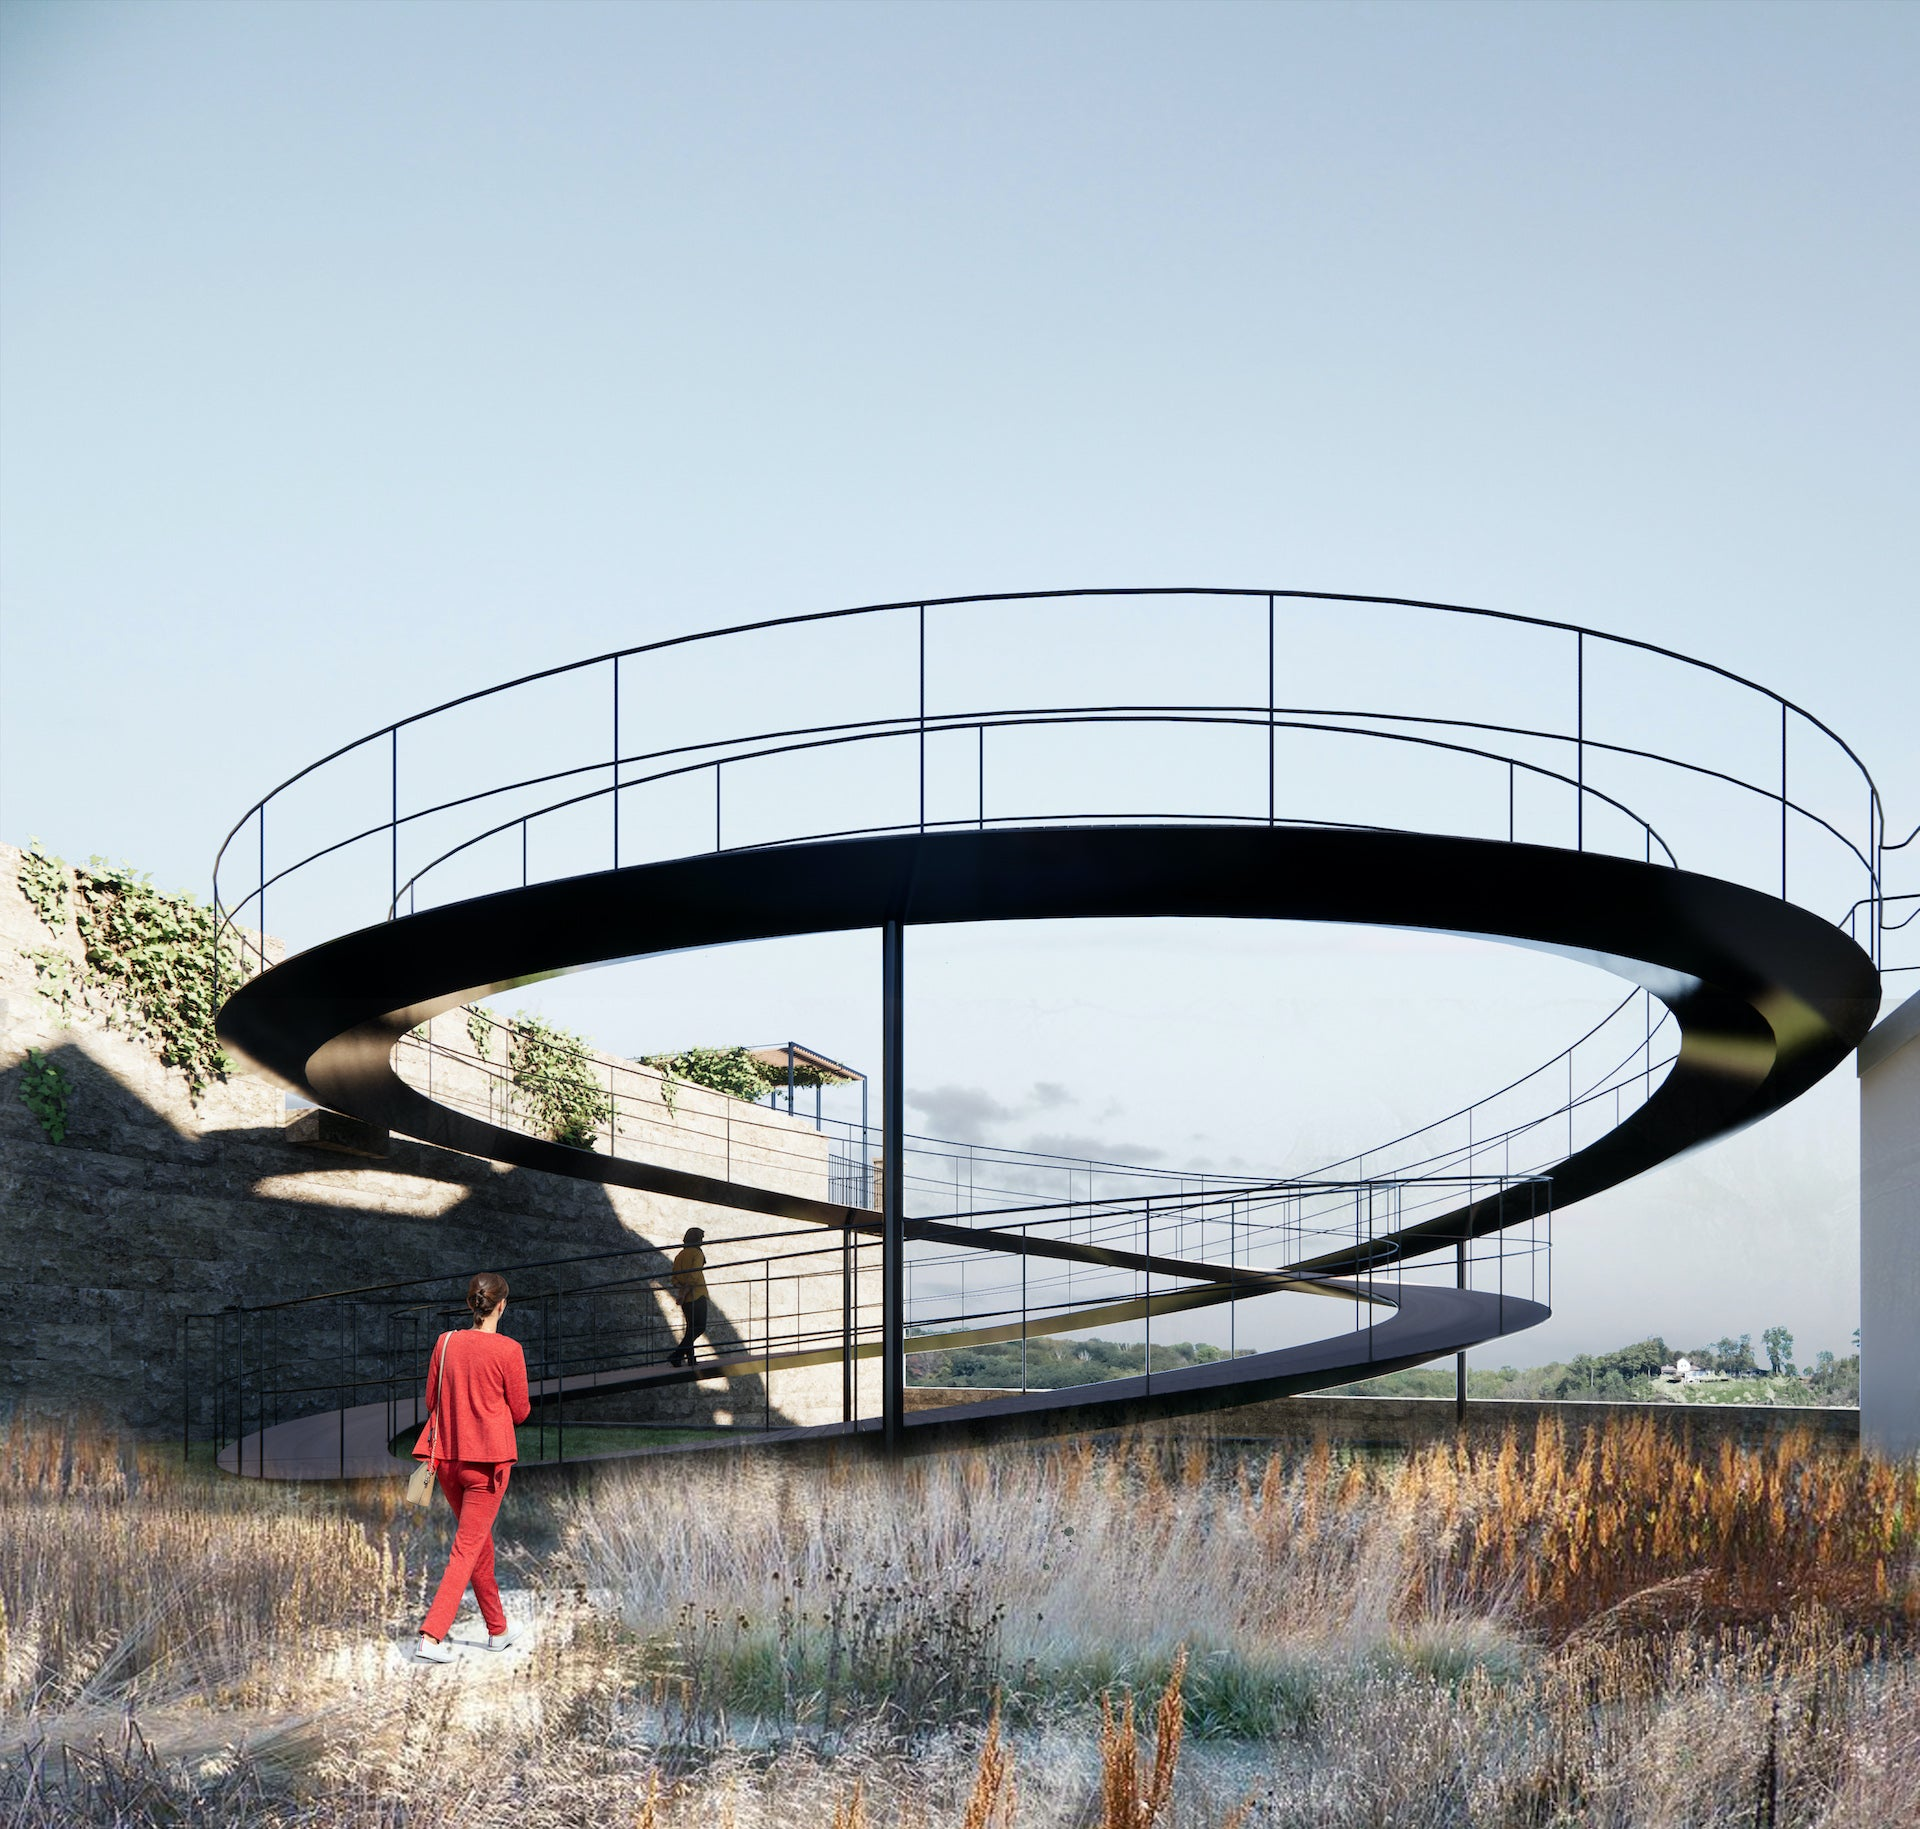 Mandrup's design includes poetic new structures, such as an infinity bridge. Photo © Dorte Mandrup Architects